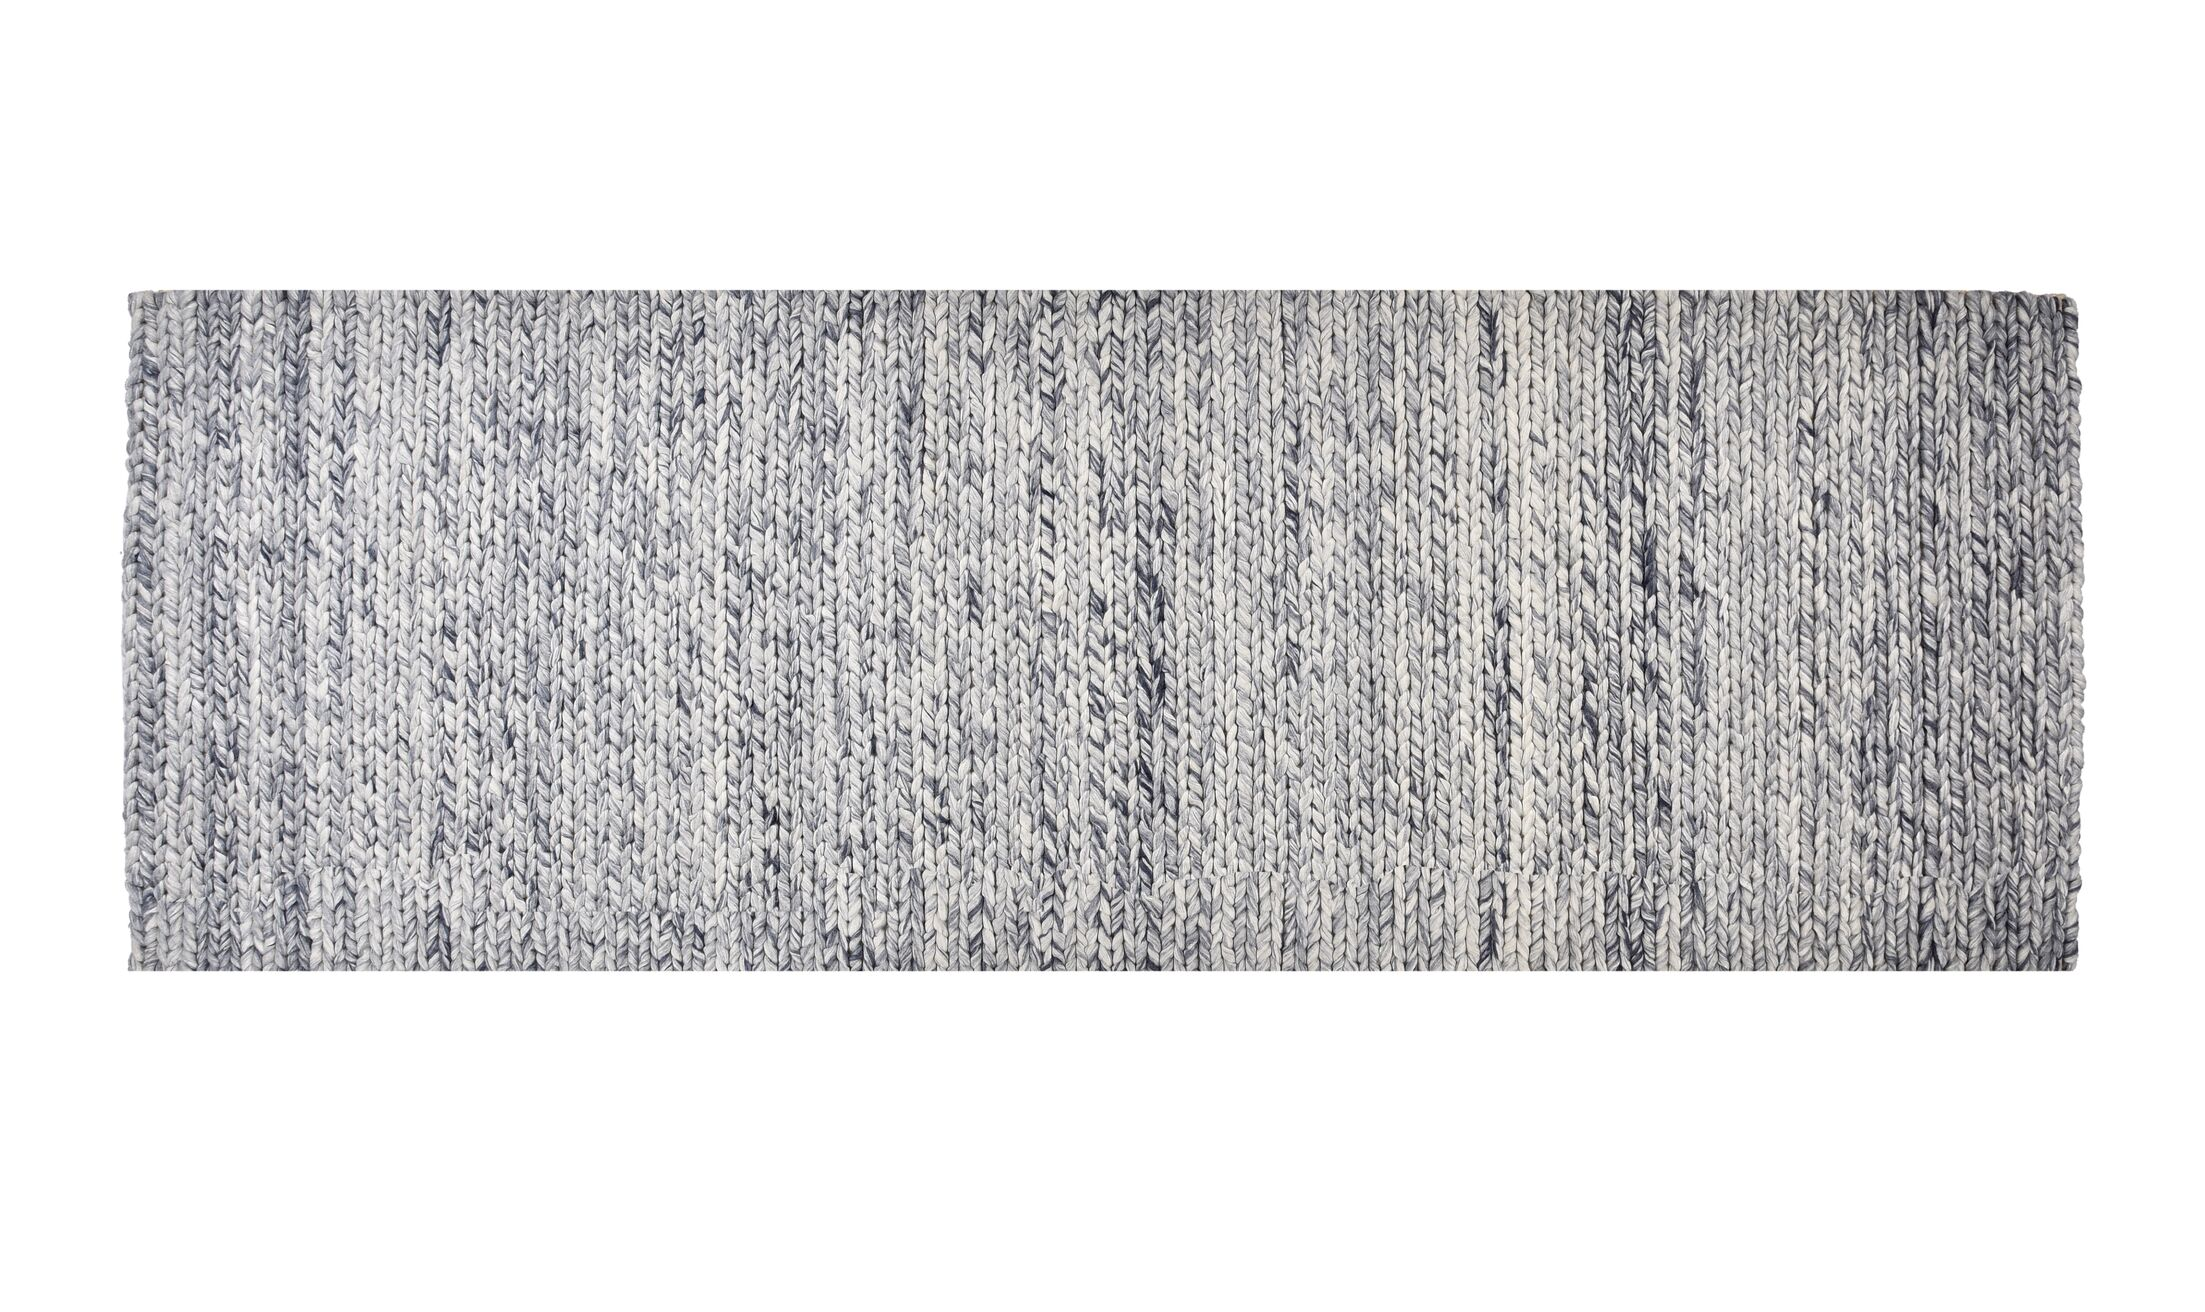 Colton Hand-Woven Wool Blue Ash Area Rug Rug Size: Runner 2' x 6'